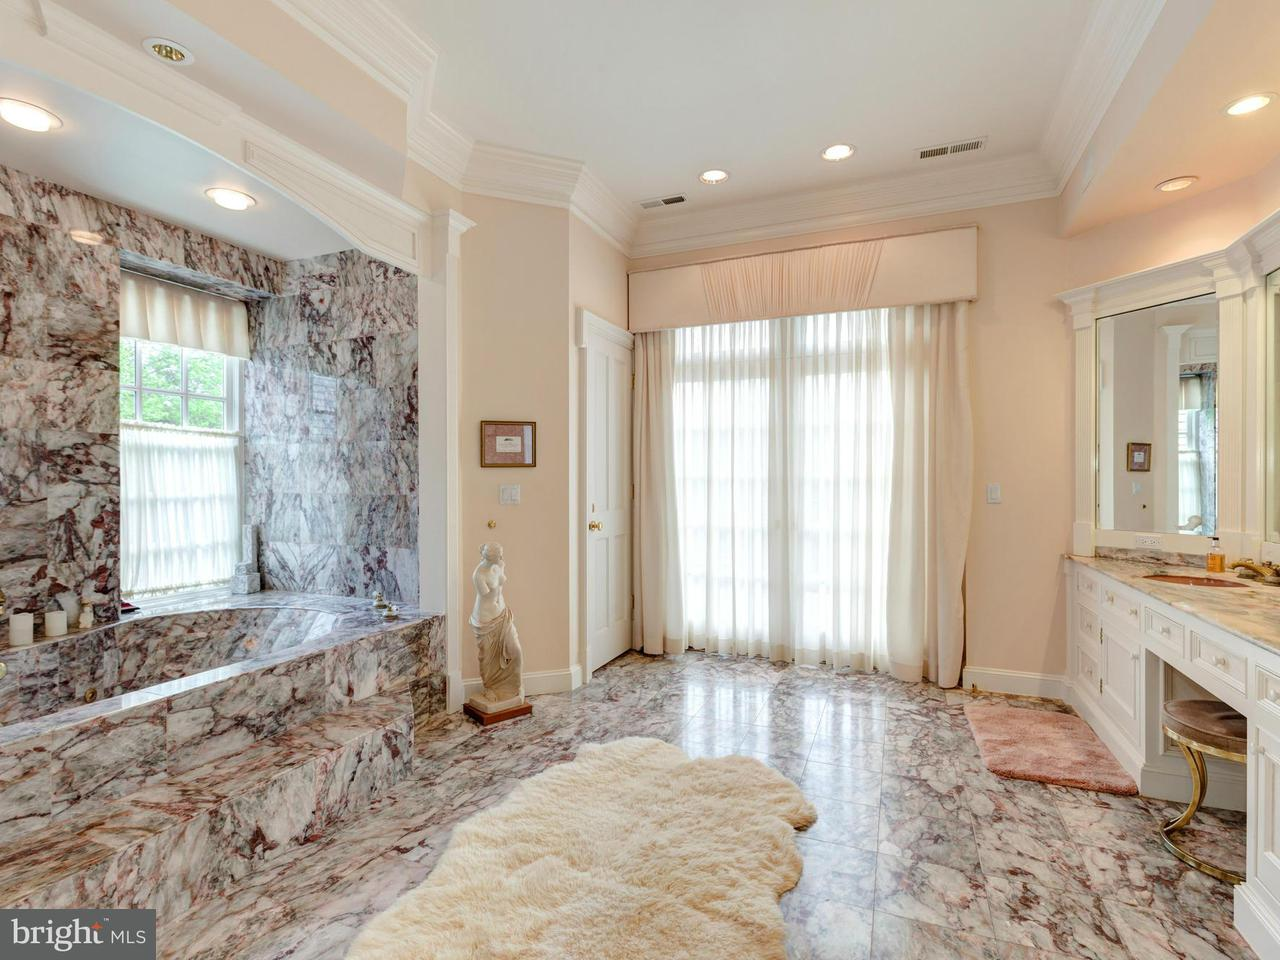 Additional photo for property listing at 11206 Richland Grove Drive 11206 Richland Grove Drive Great Falls, Virginia 22066 United States